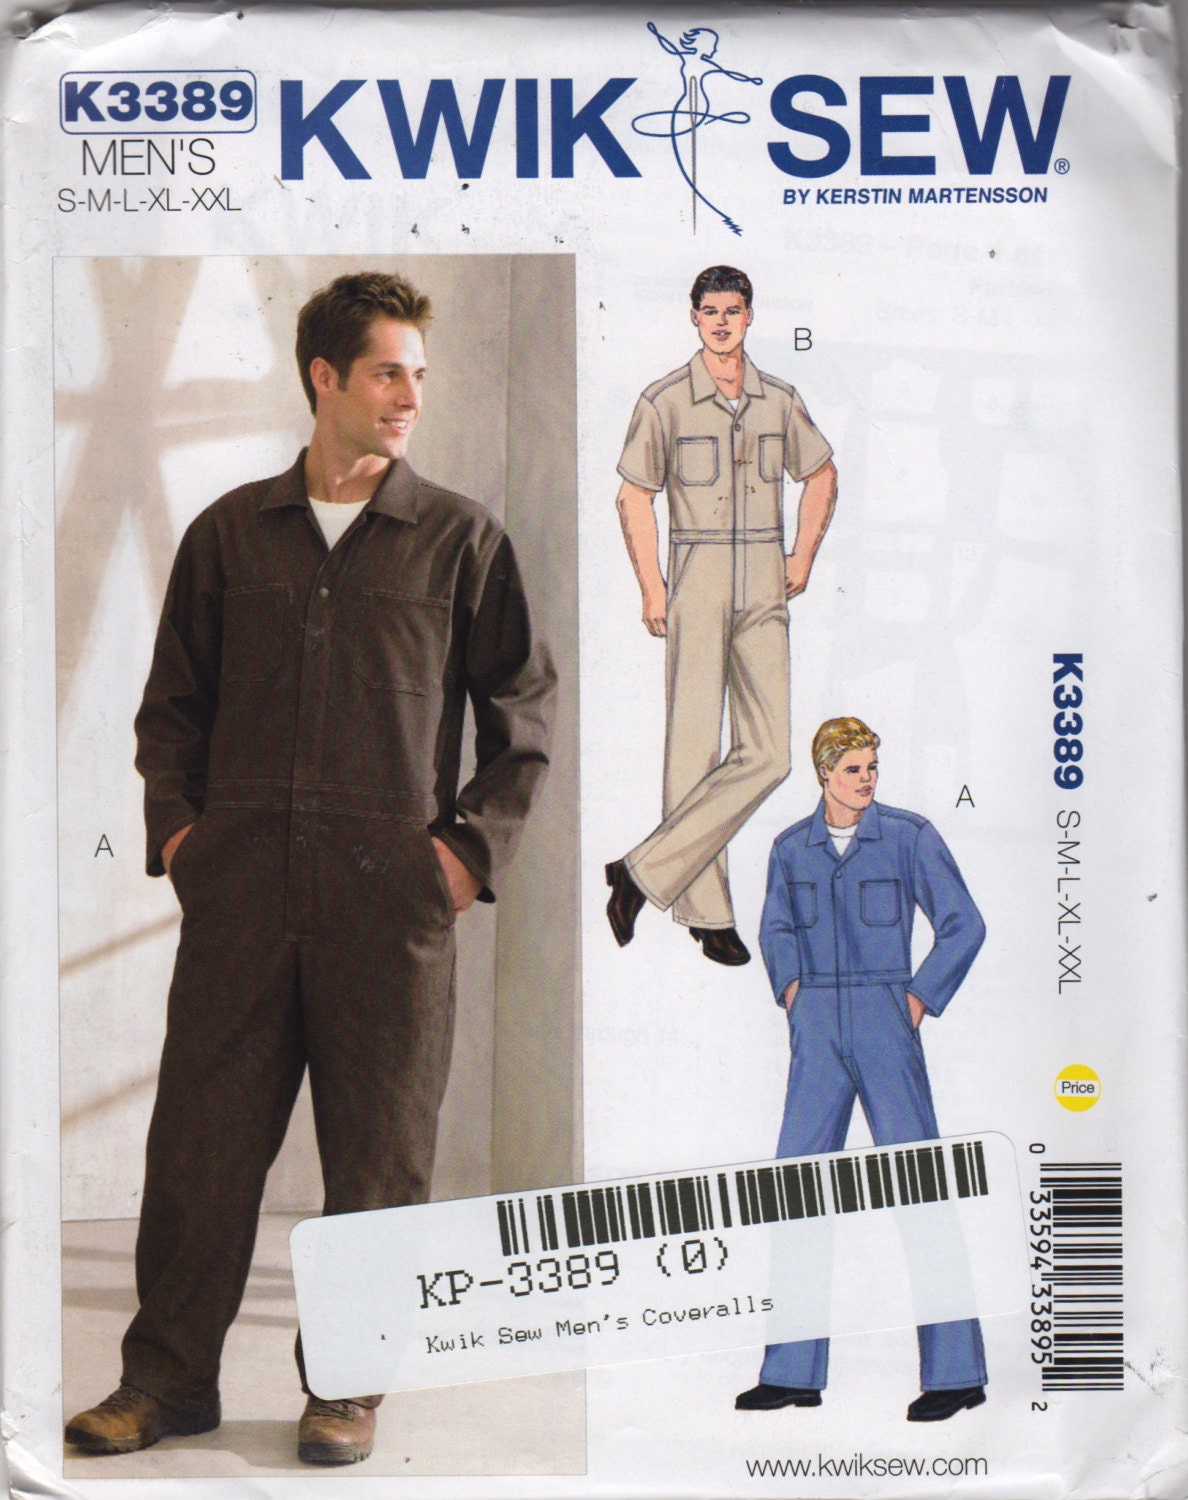 Colorful Kwik Sew Mens Muster Photos - Decke Stricken Muster ...